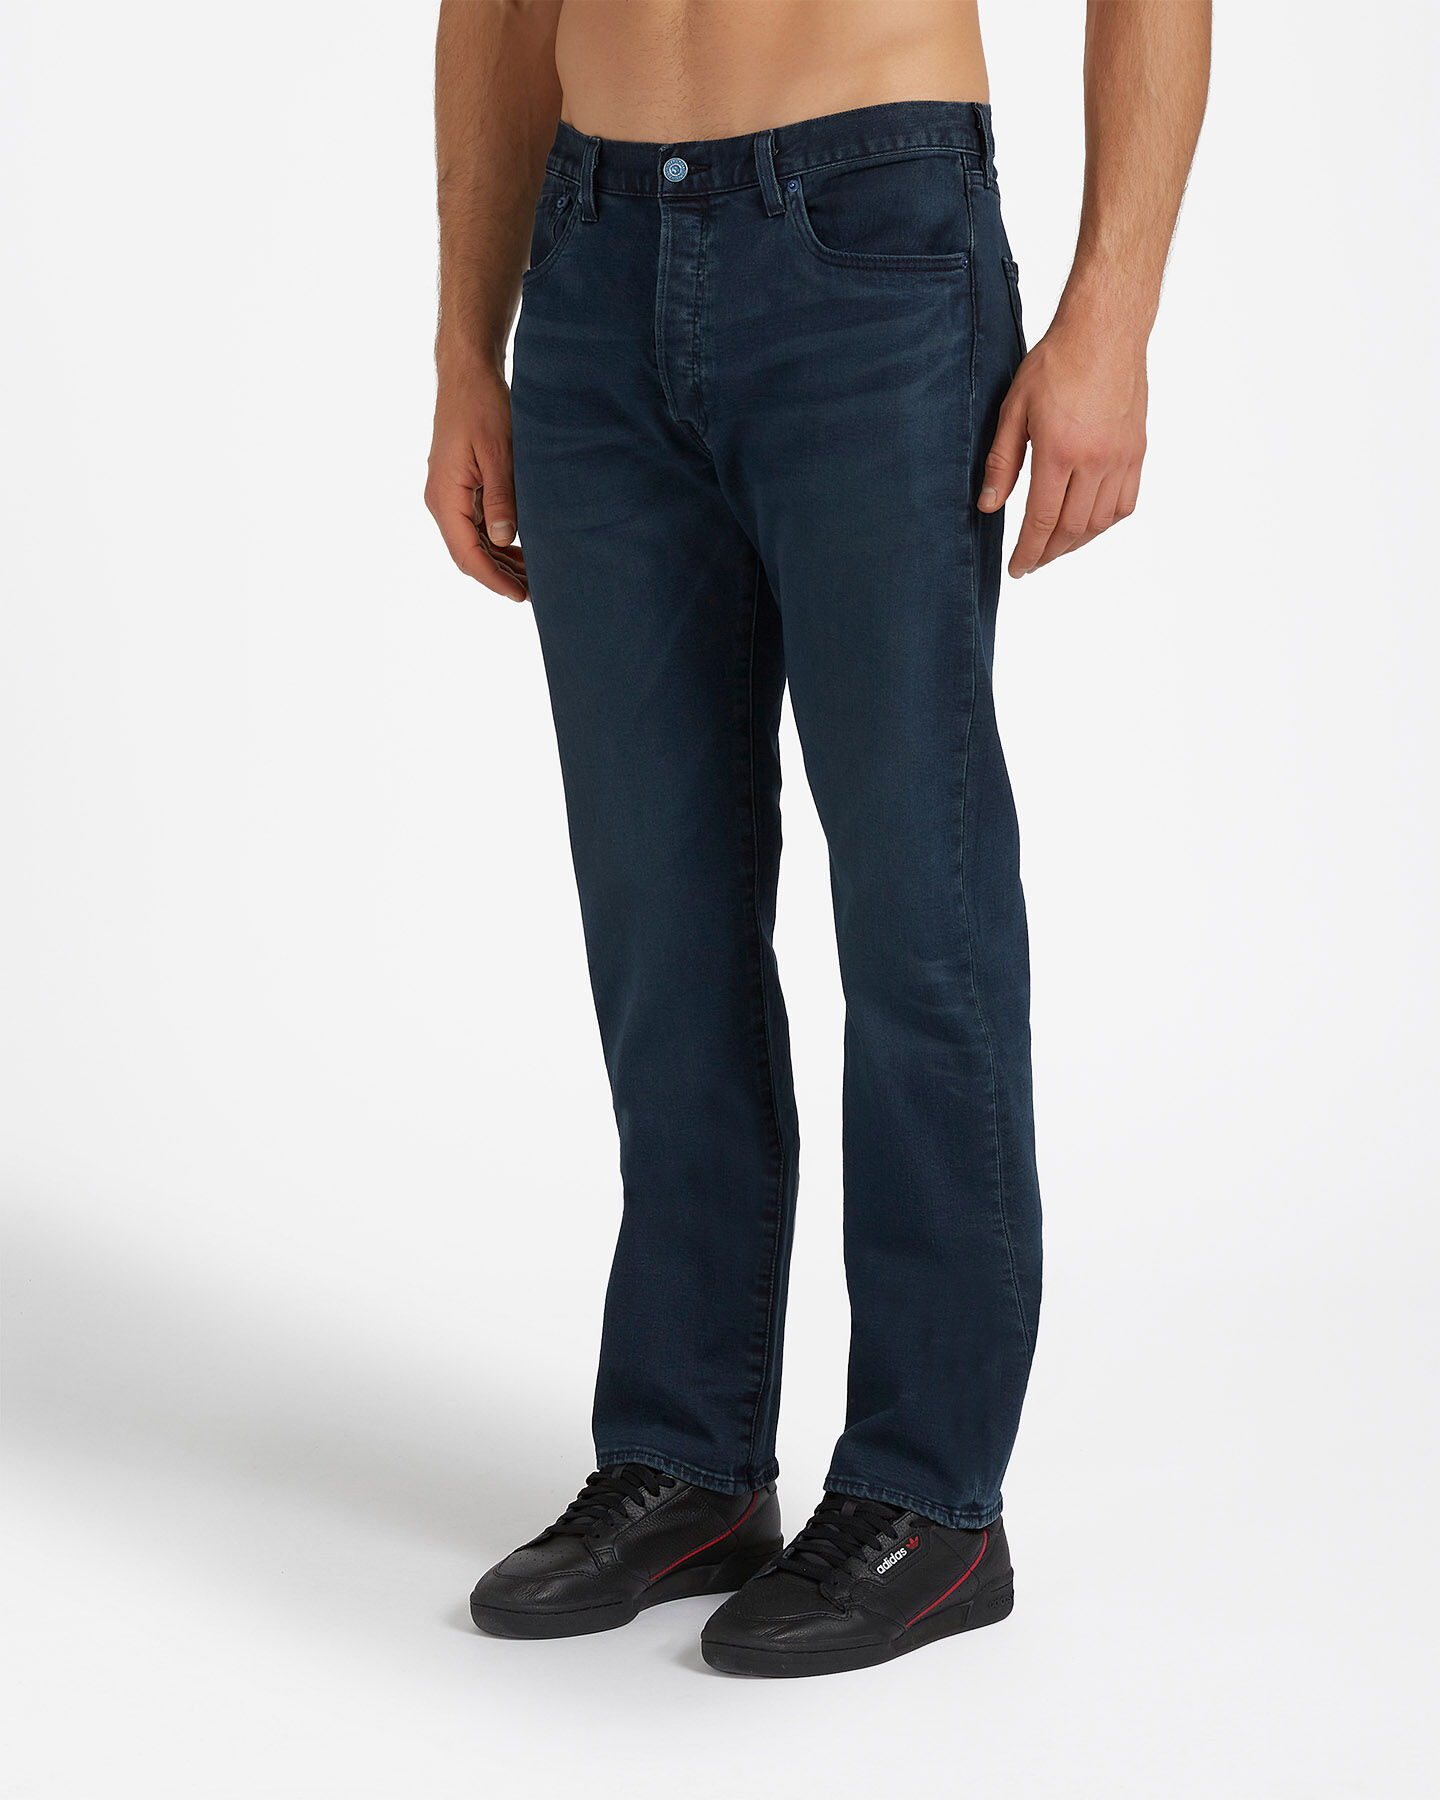 Jeans LEVI'S 501 REGULAR M S4076908 scatto 2